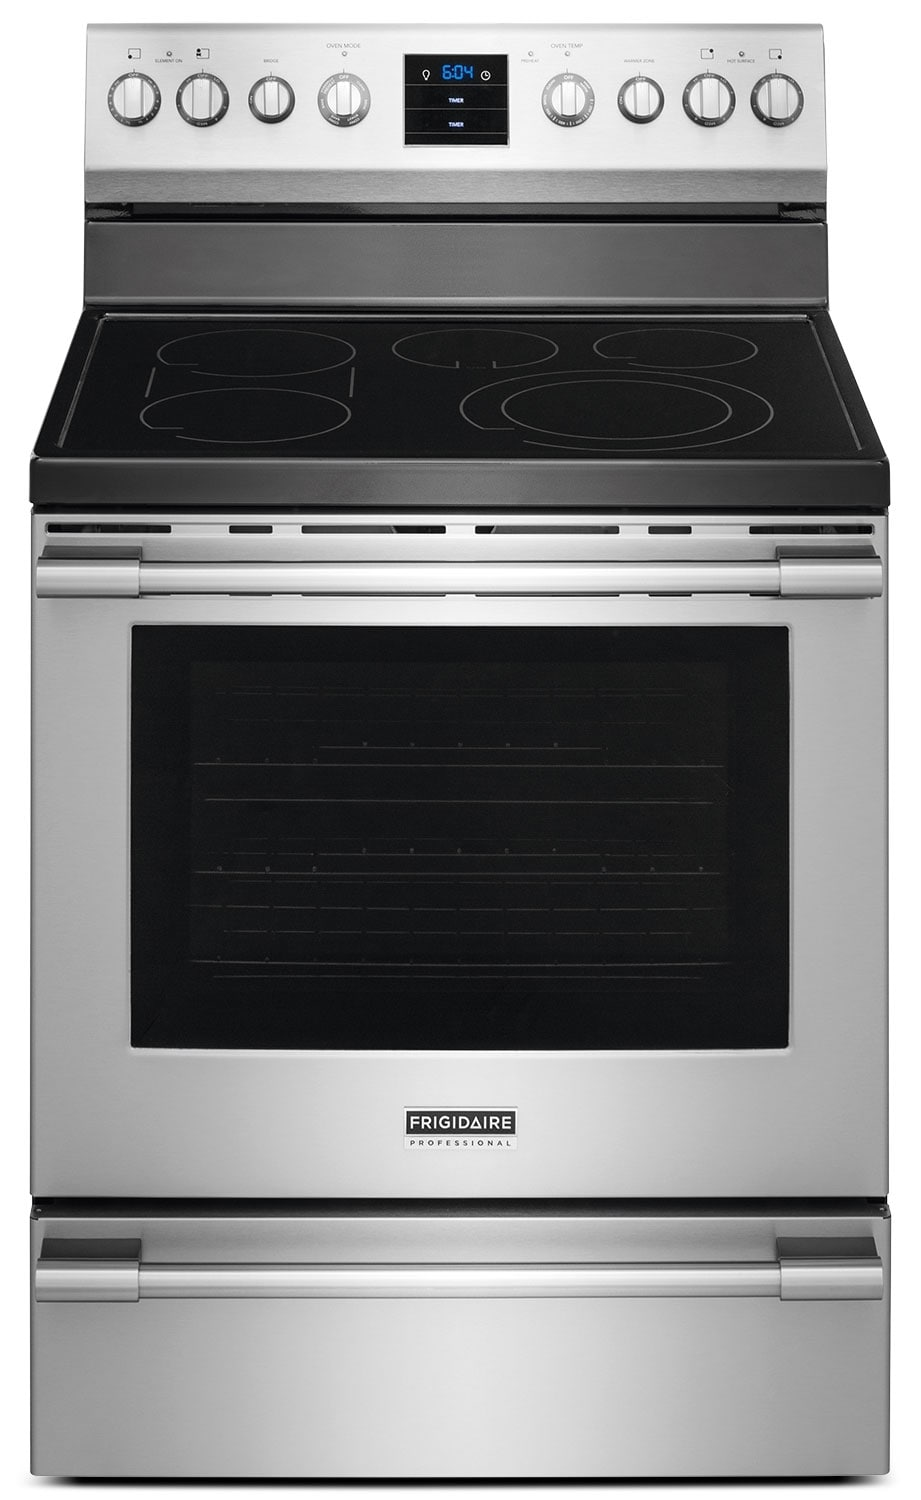 "Cooking Products - Frigidaire Professional 30"" Convection Electric Range - Stainless Steel"